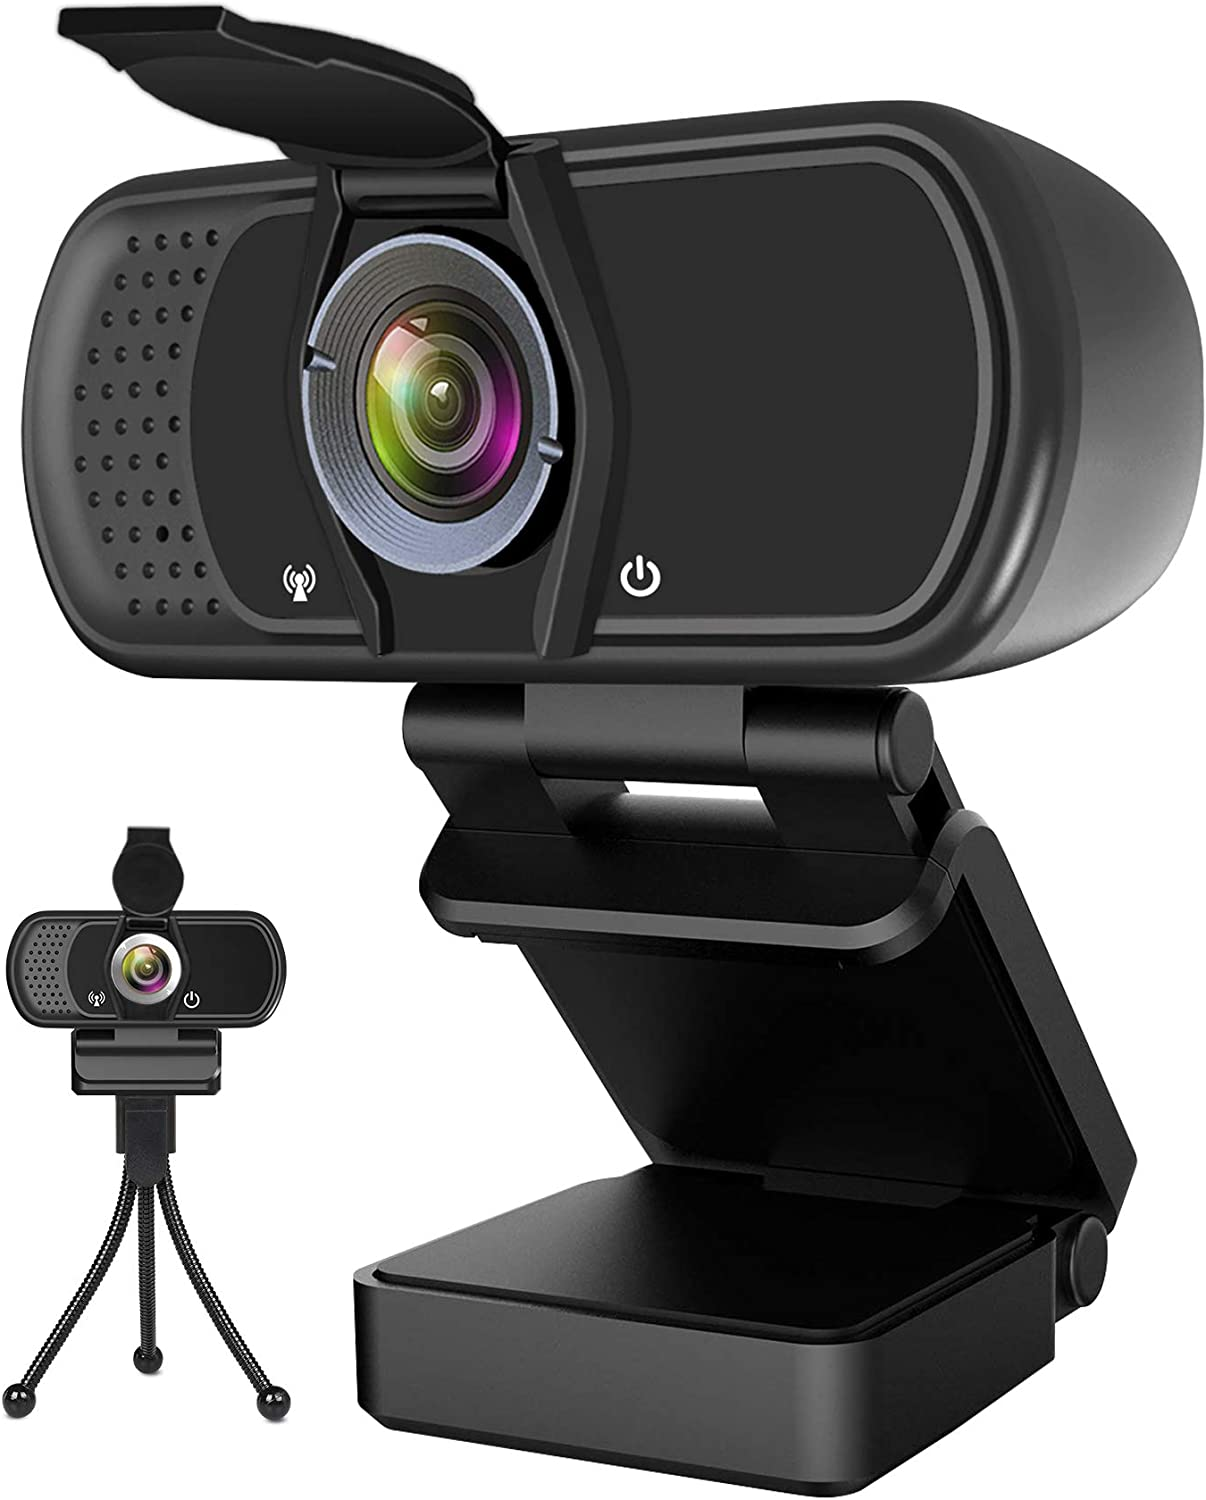 Webcam with Microphone, Hrayzan 1080P HD Webcam with Privacy Cover and Tripod, Streaming Computer Web Camera with 110-Degree Wide View Angle, USB PC Webcam for Video Calling Recording Conferencing : Camera & Photo